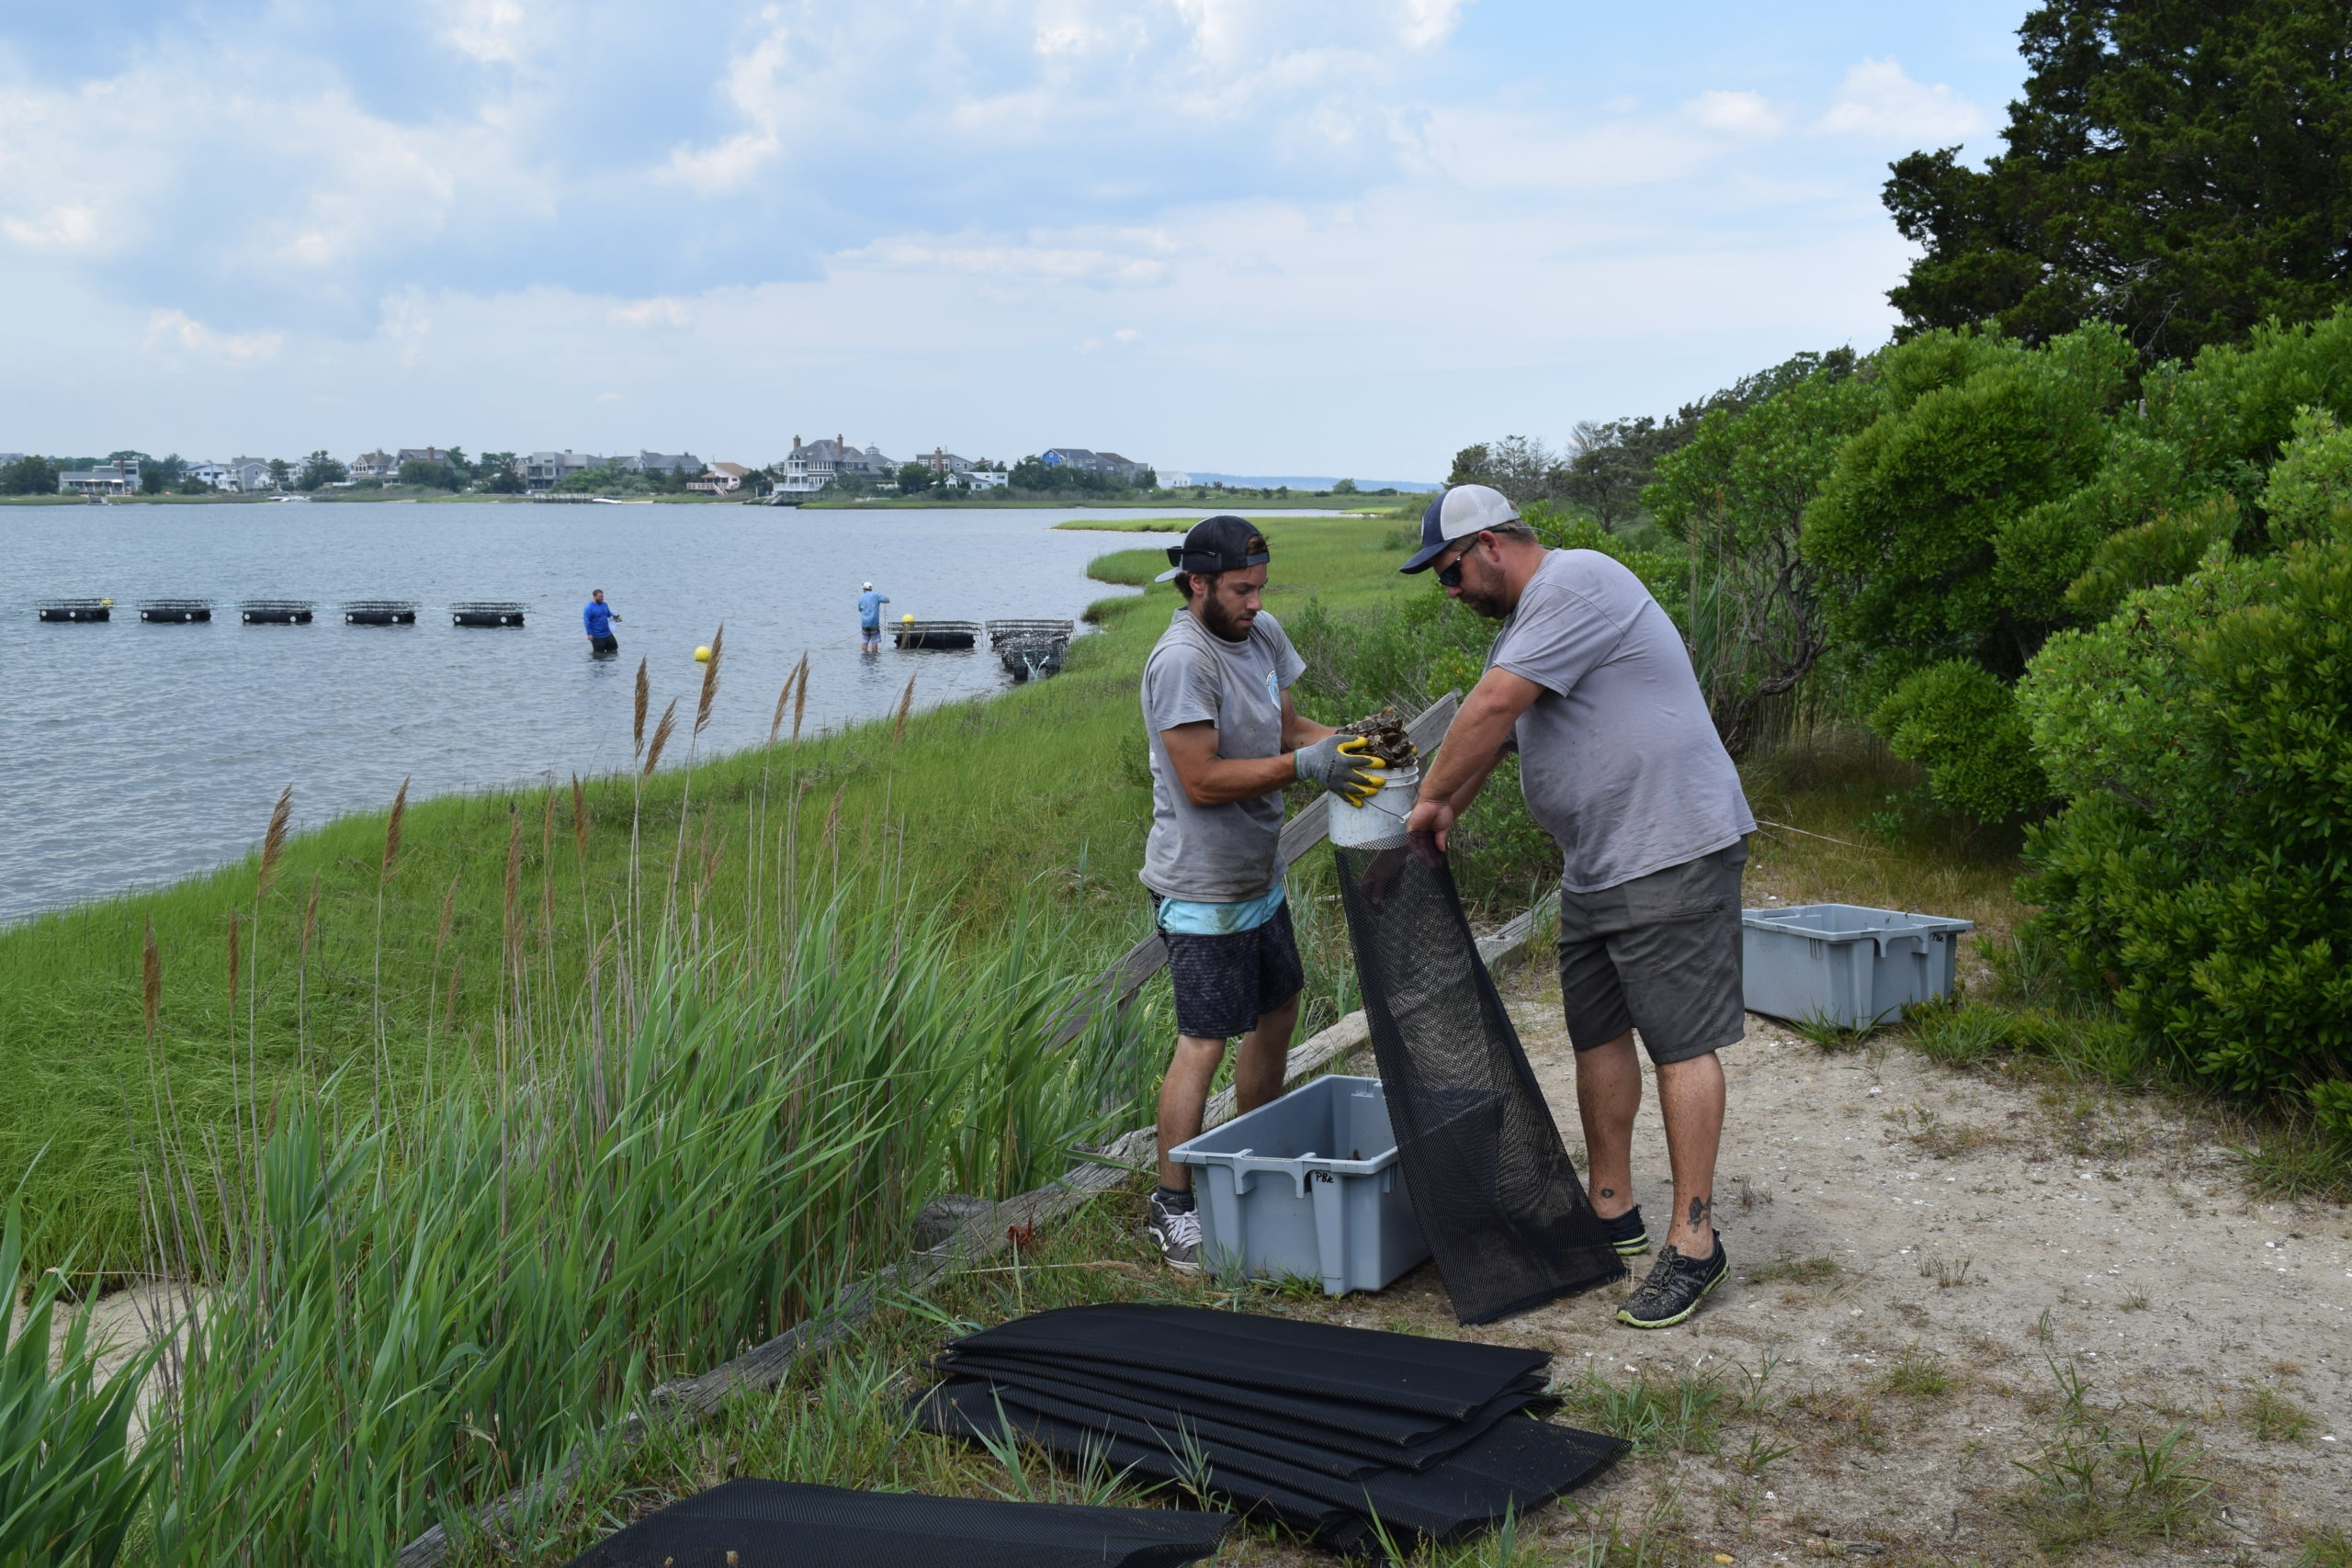 Members of the AWS staff adding oysters to the nursery